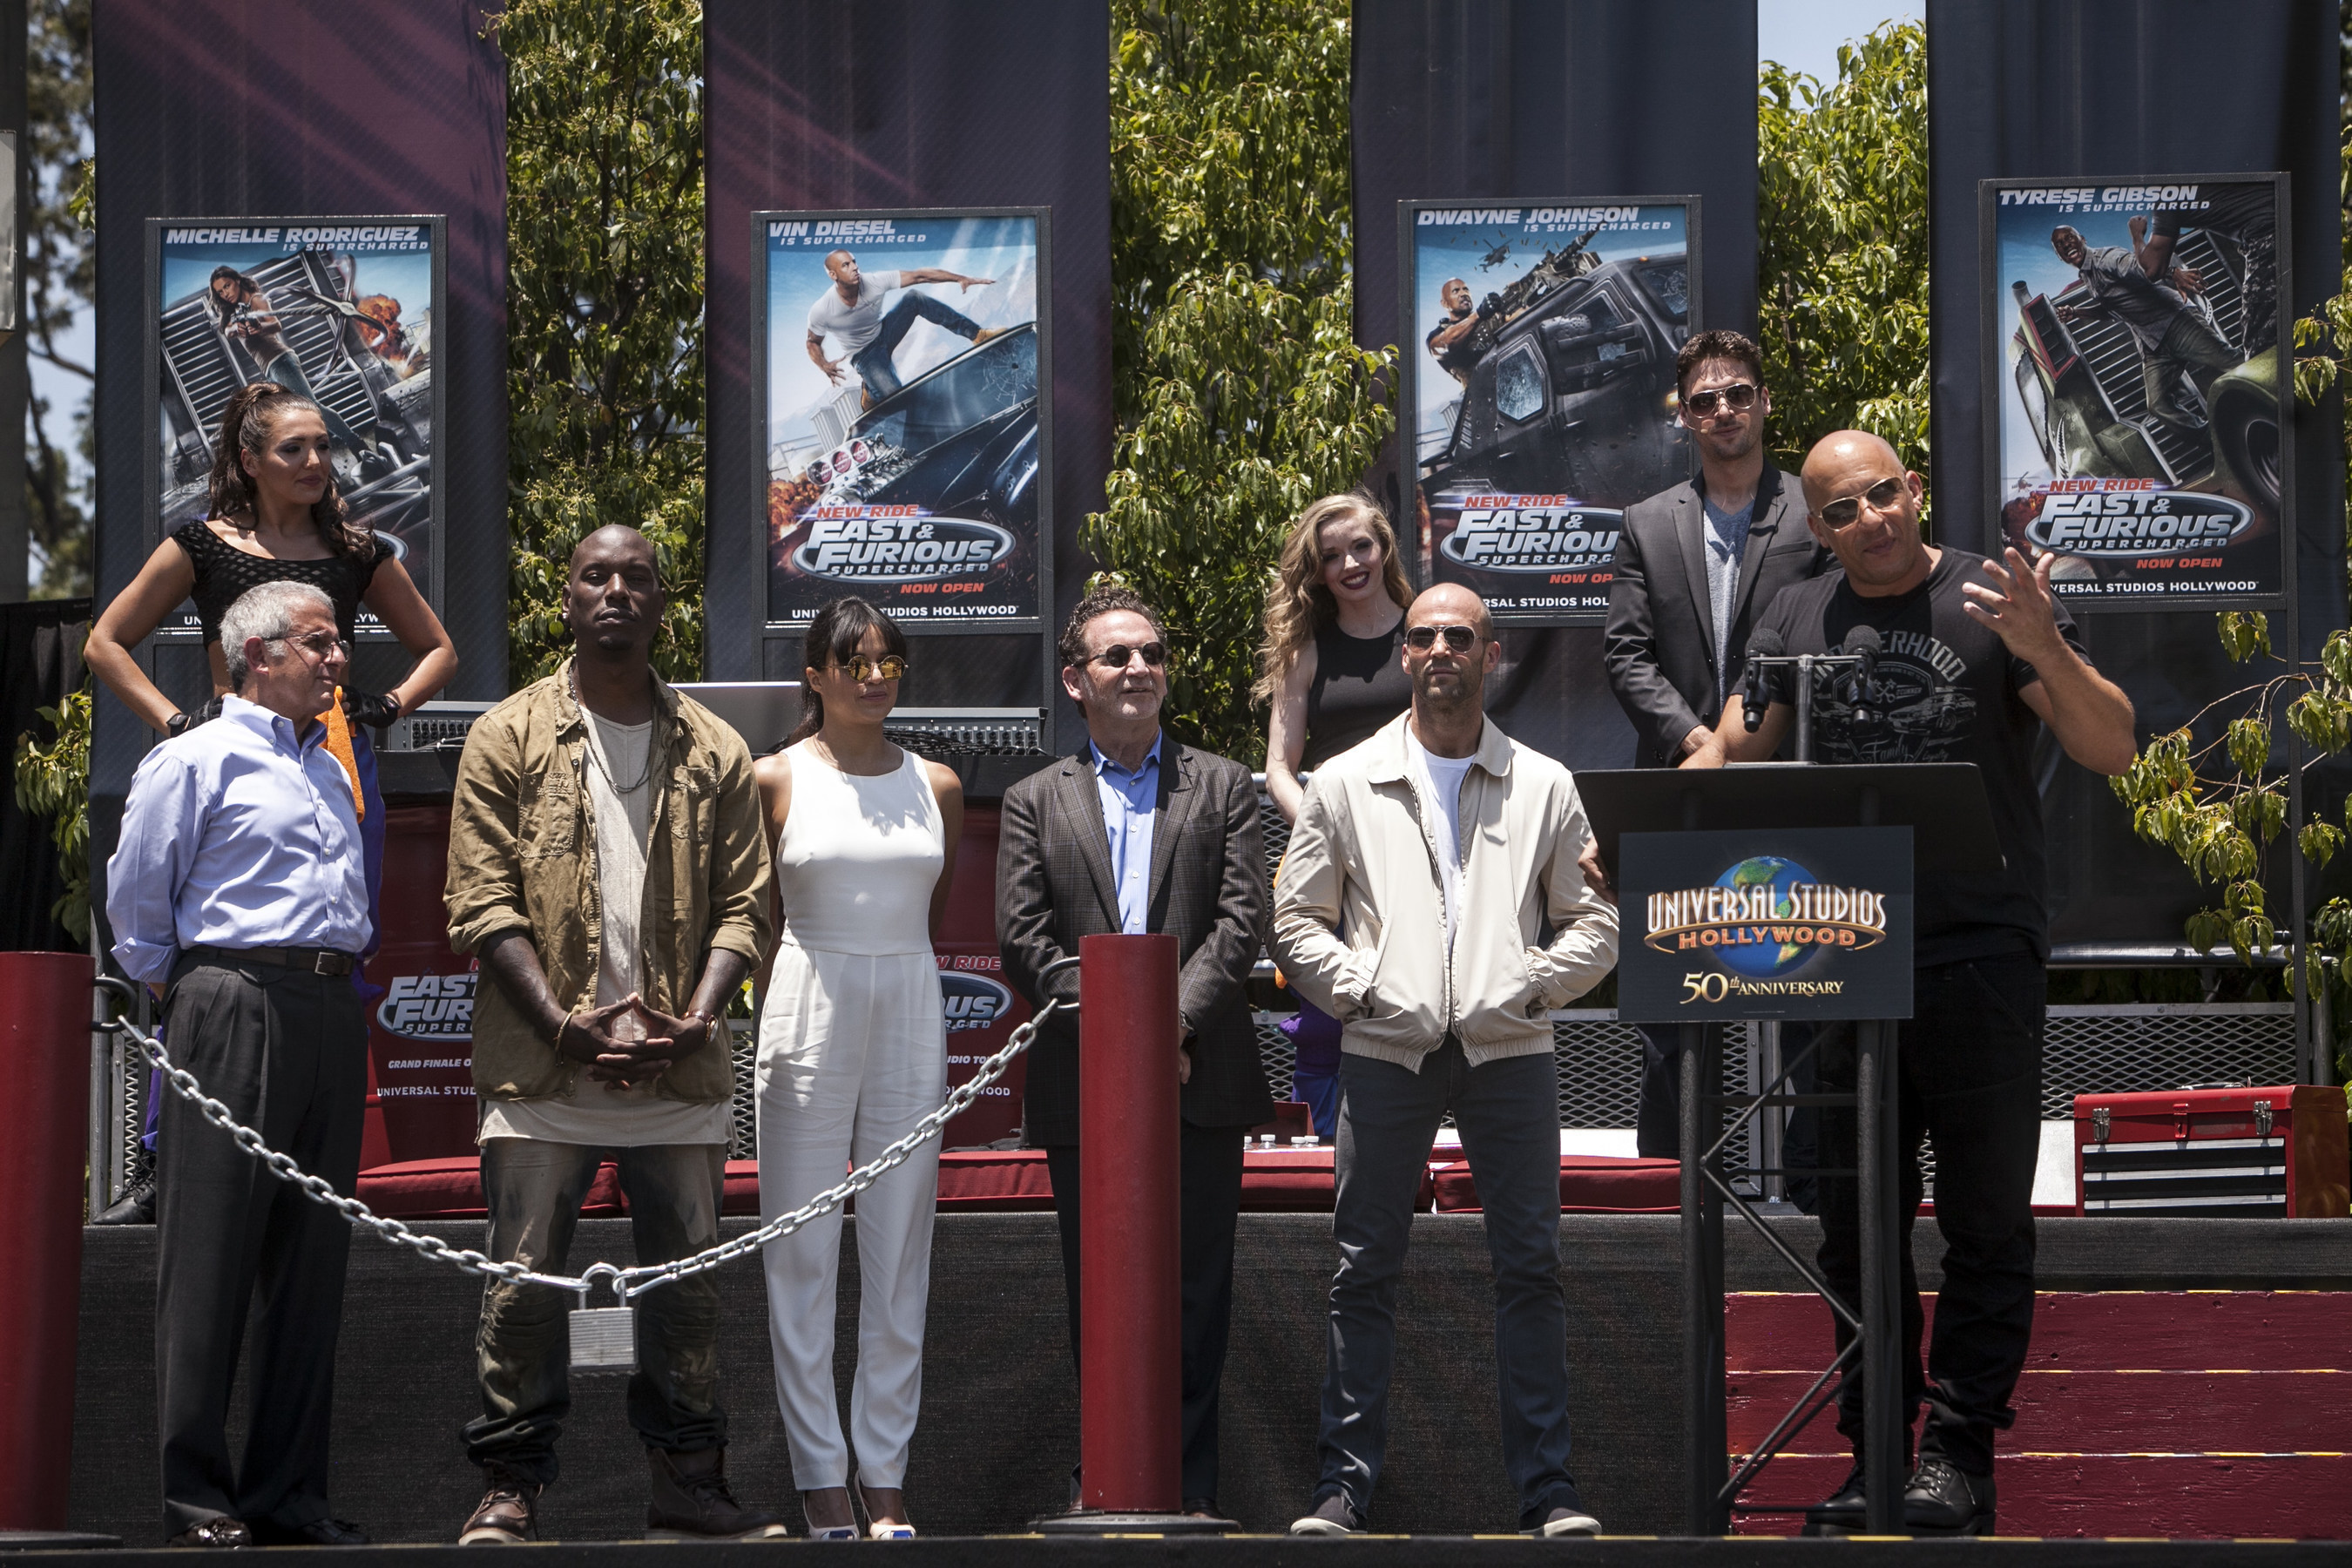 'Fast & Furious--Supercharged' Races onto the Scene at Universal Studios Hollywood